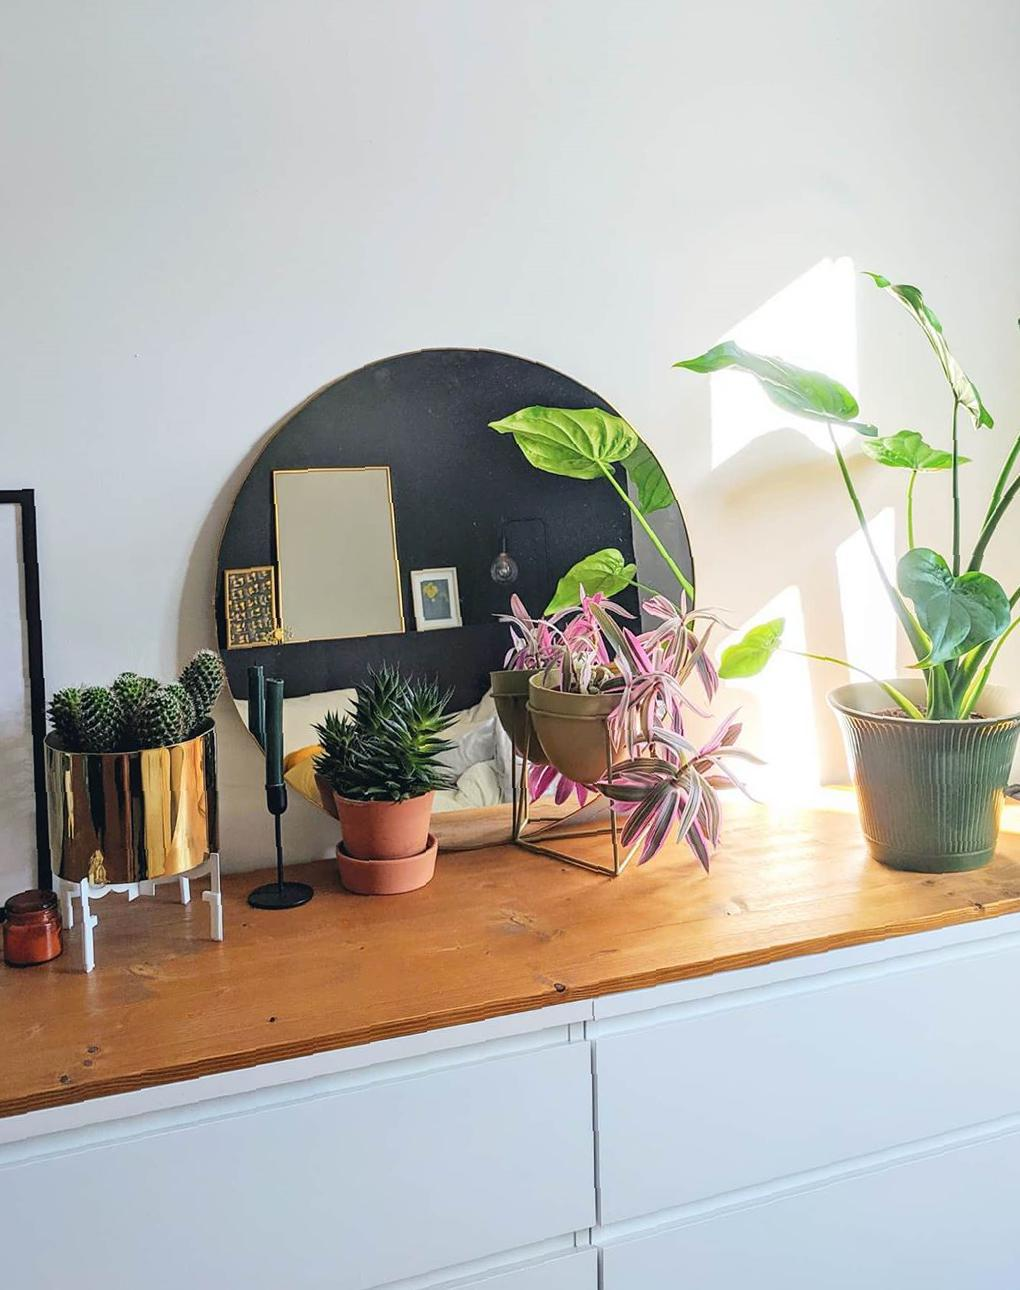 35 Ingenious Ideas To Decorate Your Home With Adding A Greenery - Page 11 of 12 - Guide19 Blog